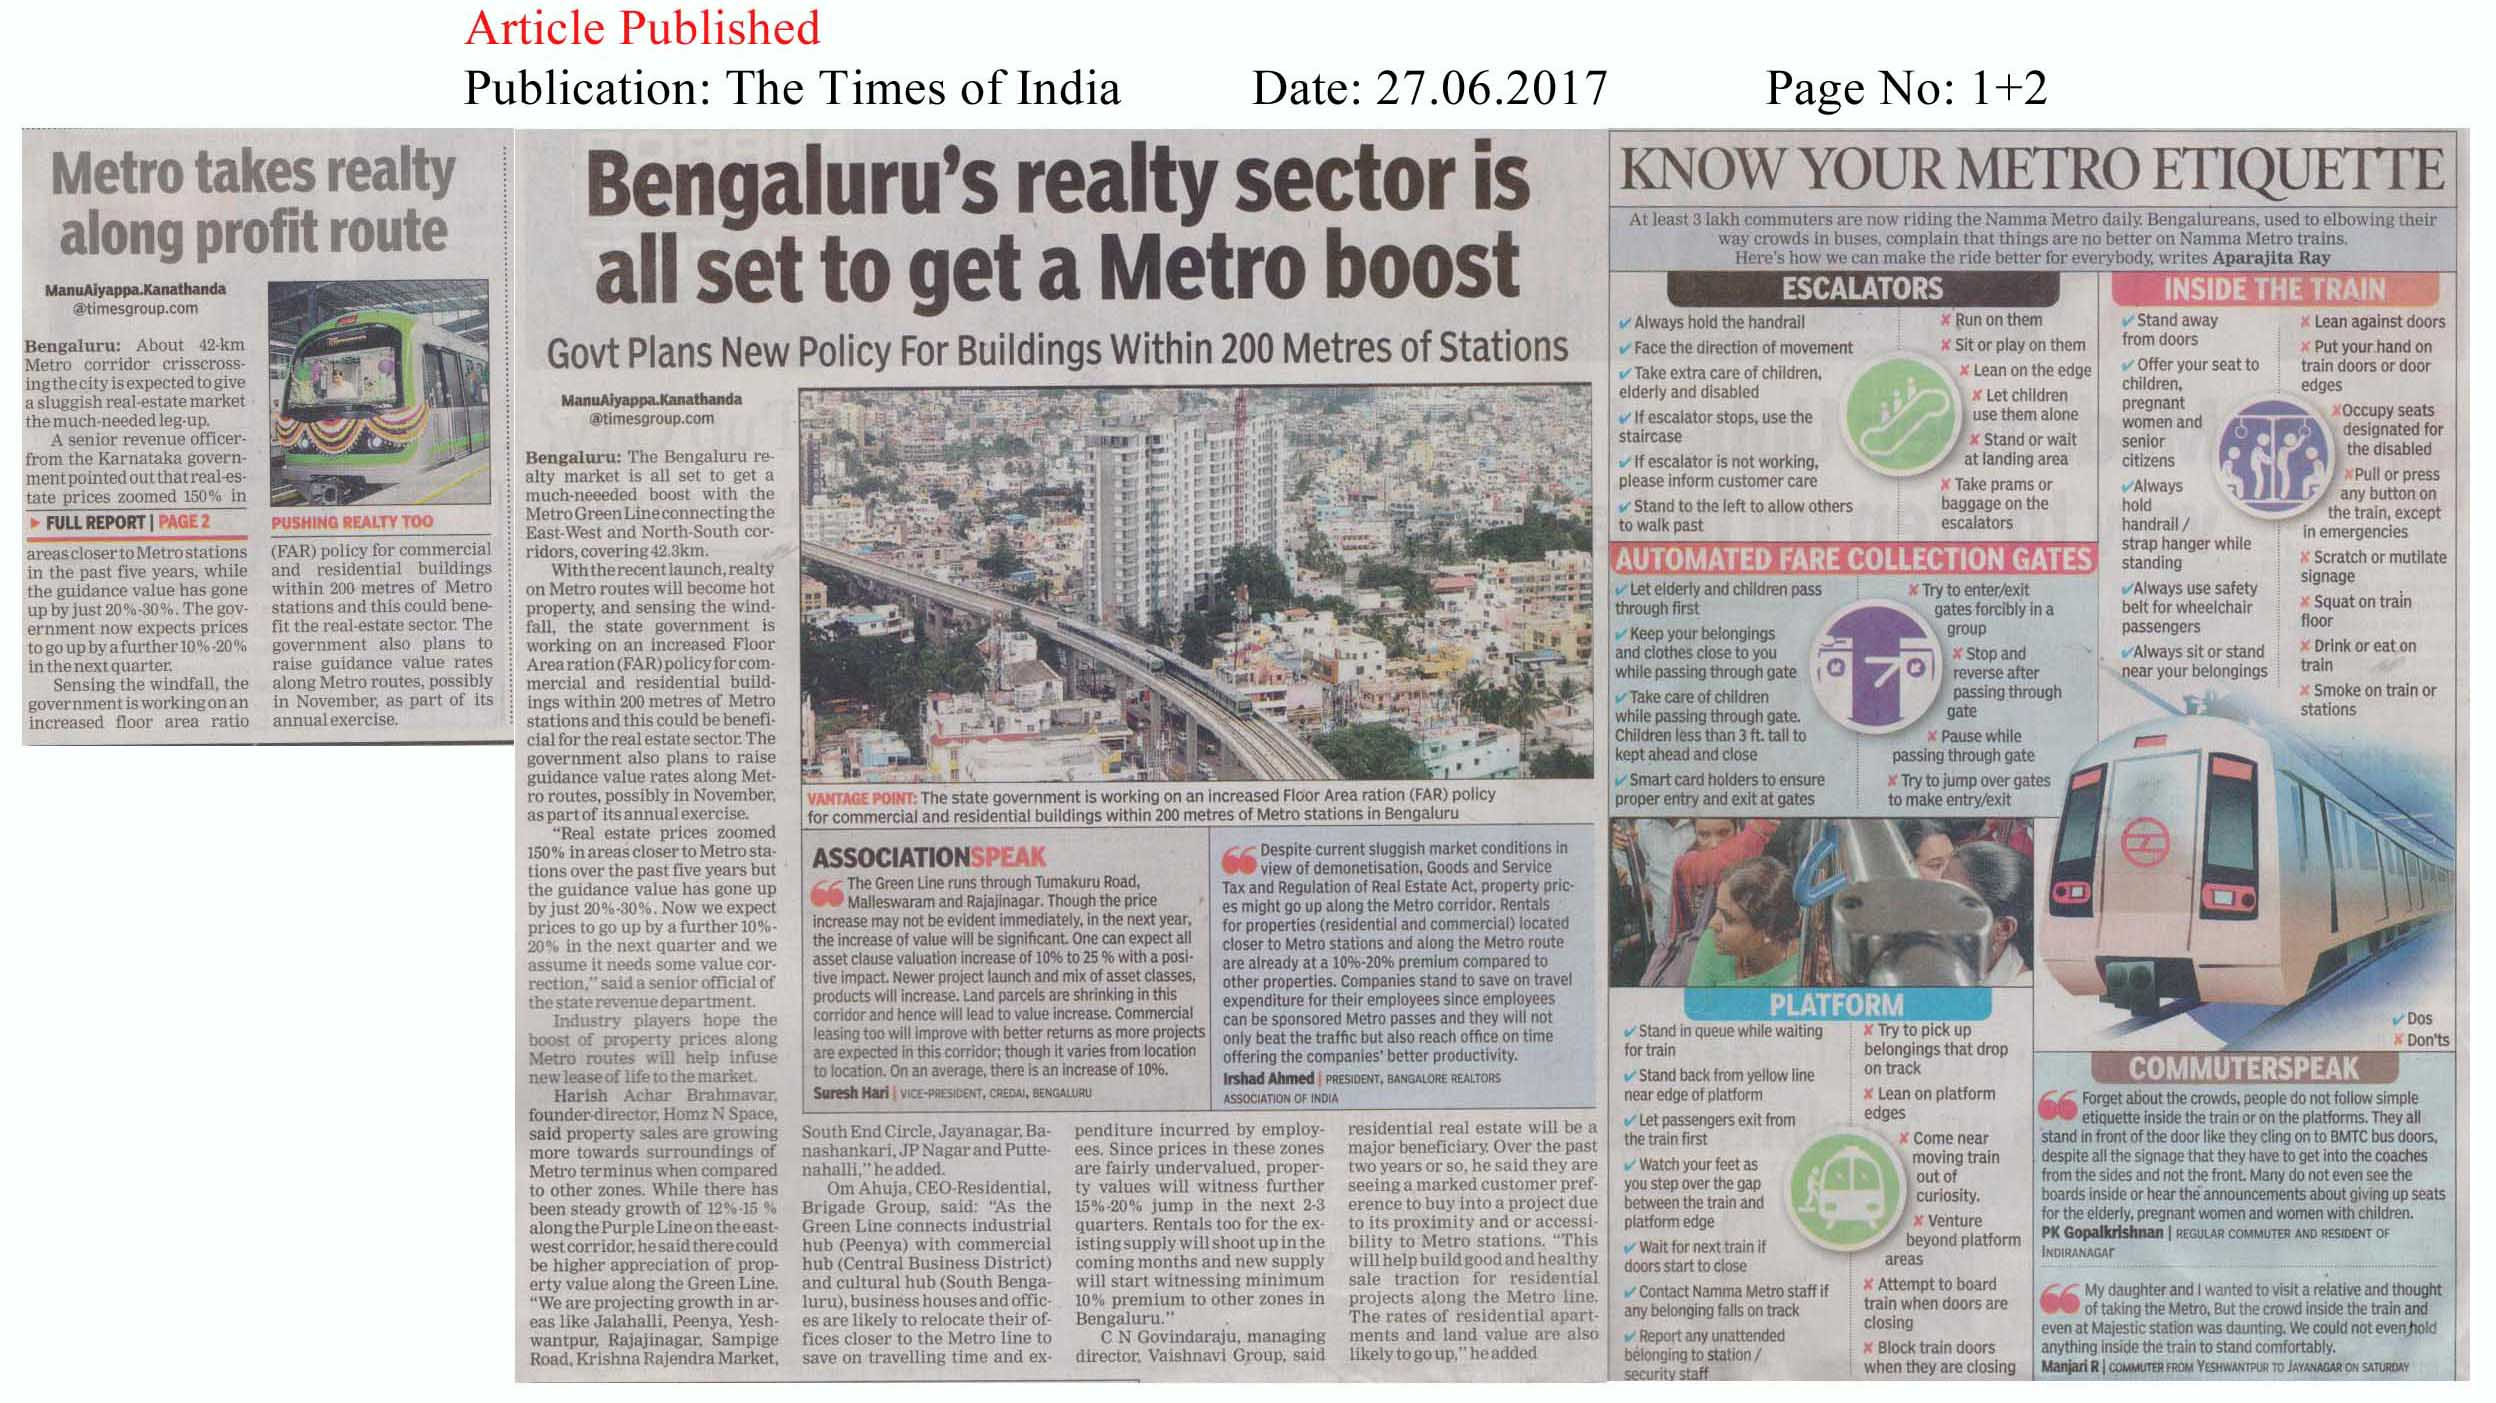 Bengaluru's realty sector is all set to get a Metro boost—The Times of India